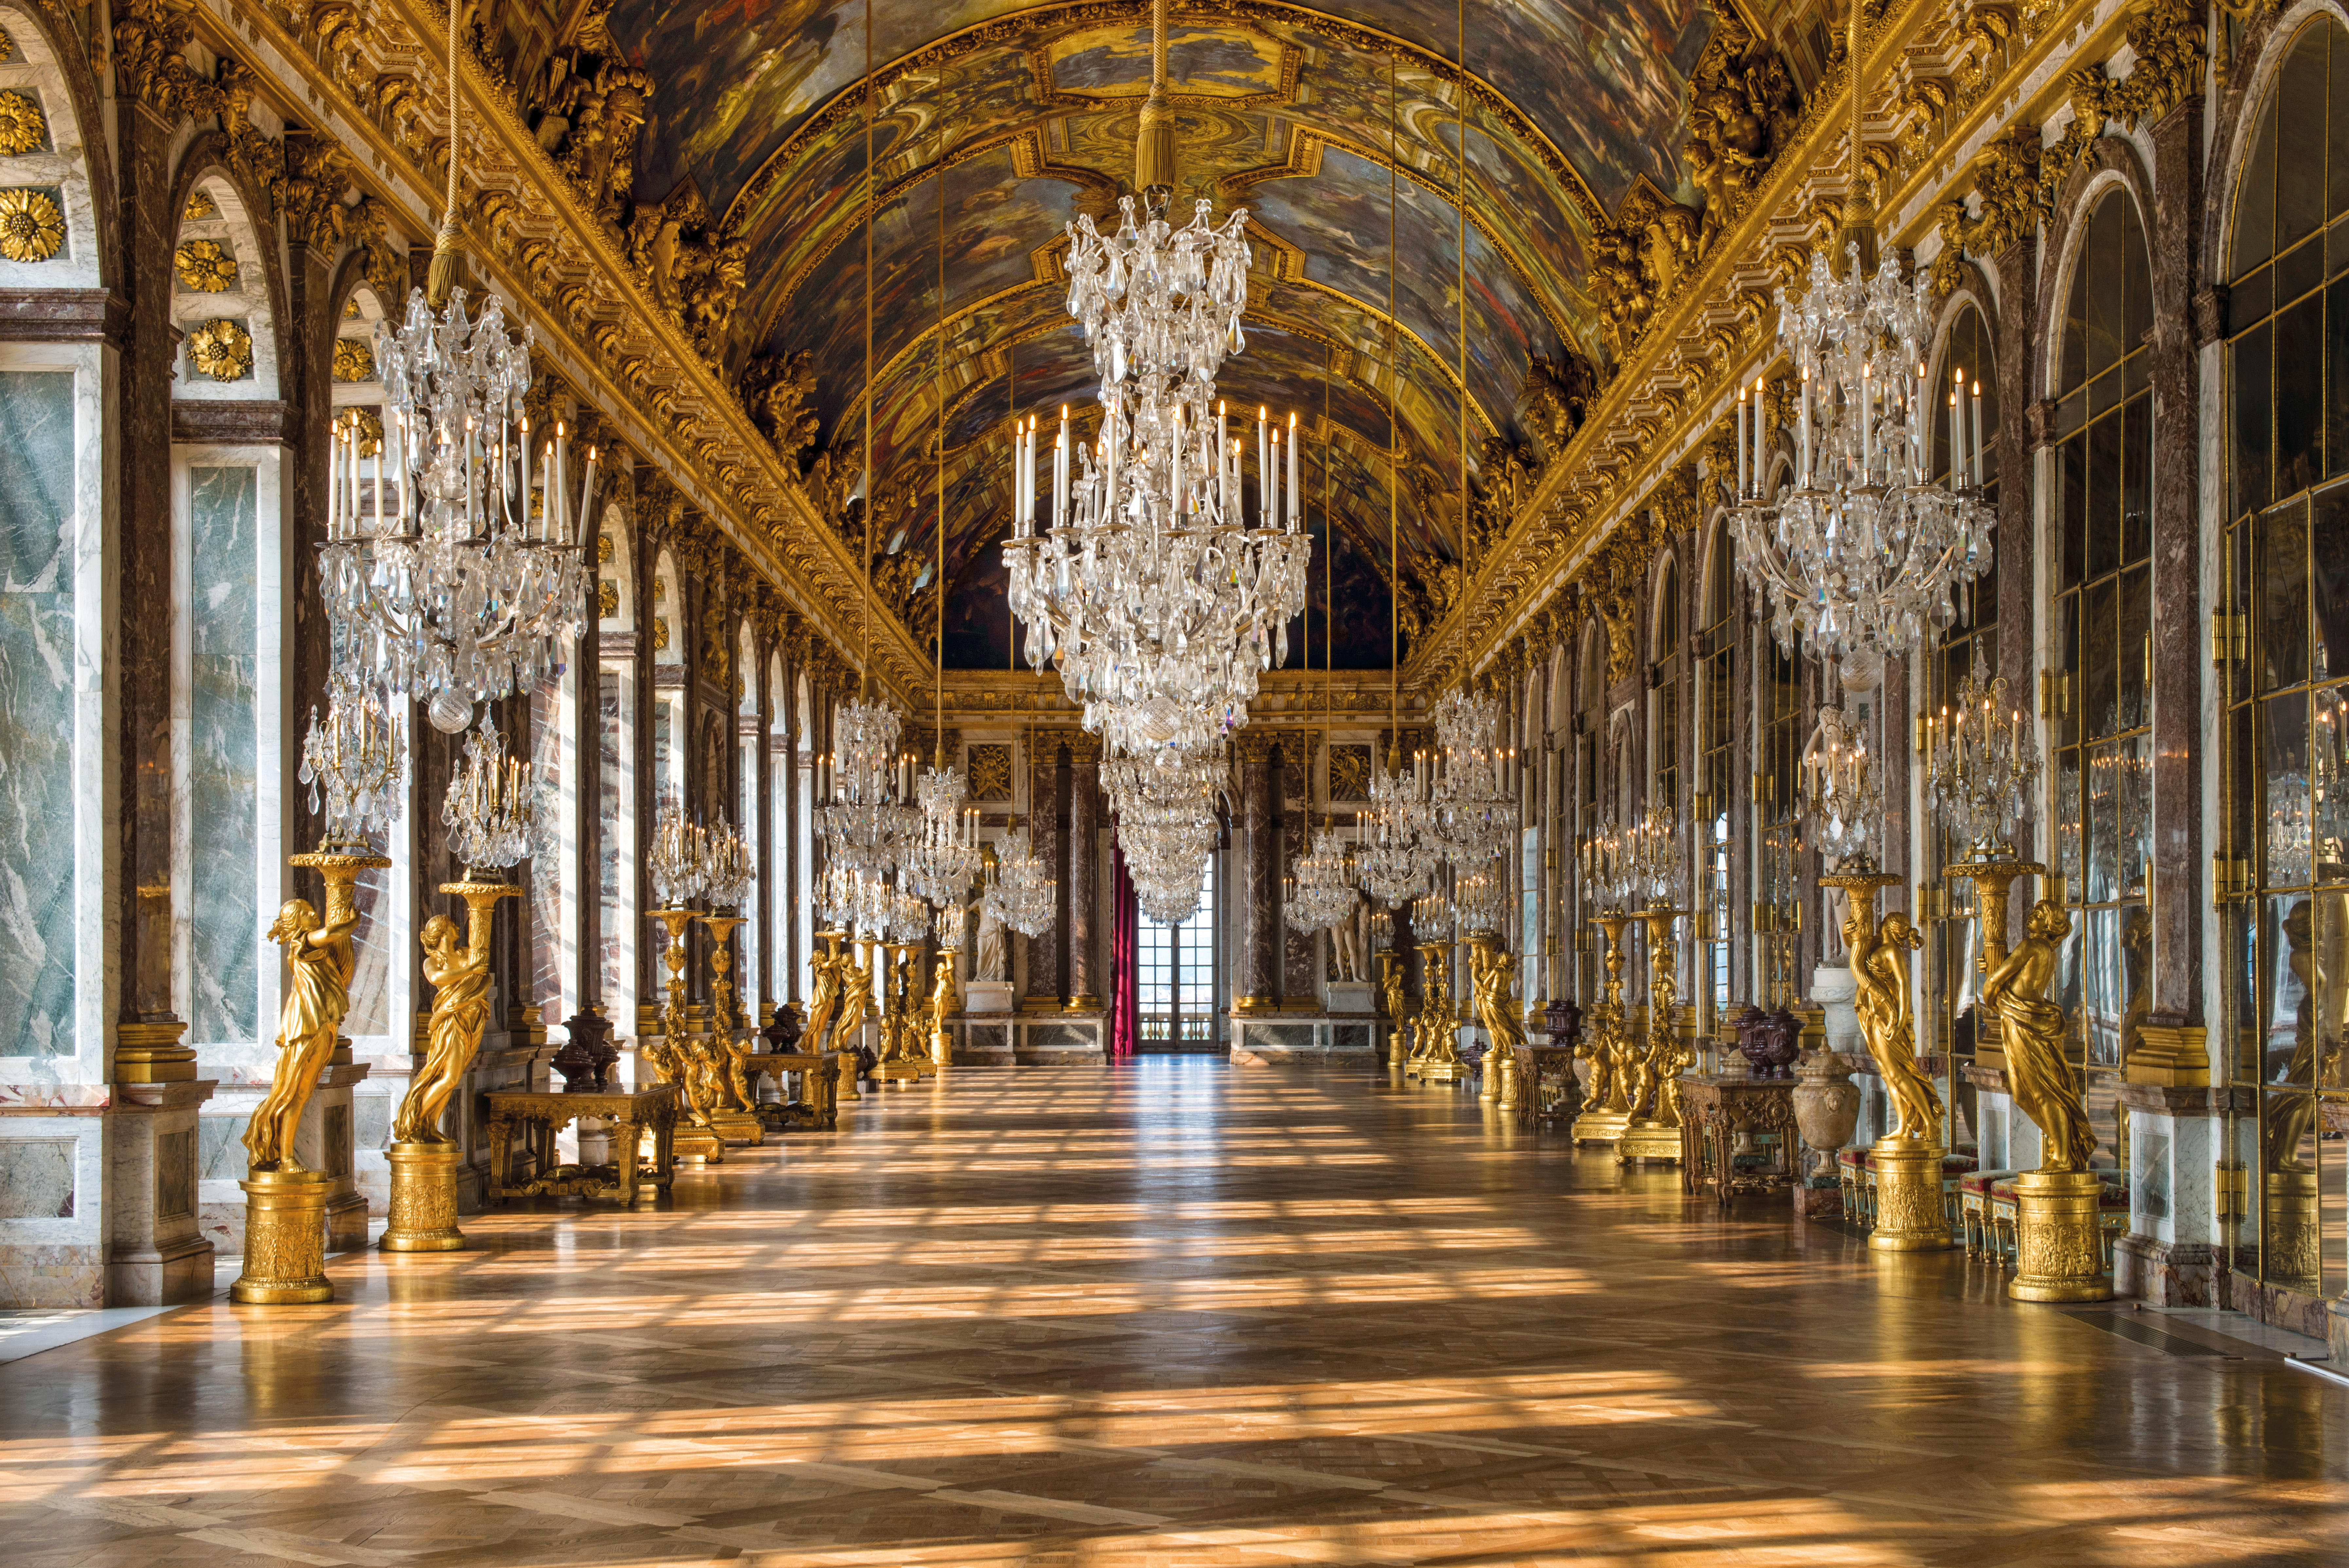 The real Hall of Mirrors